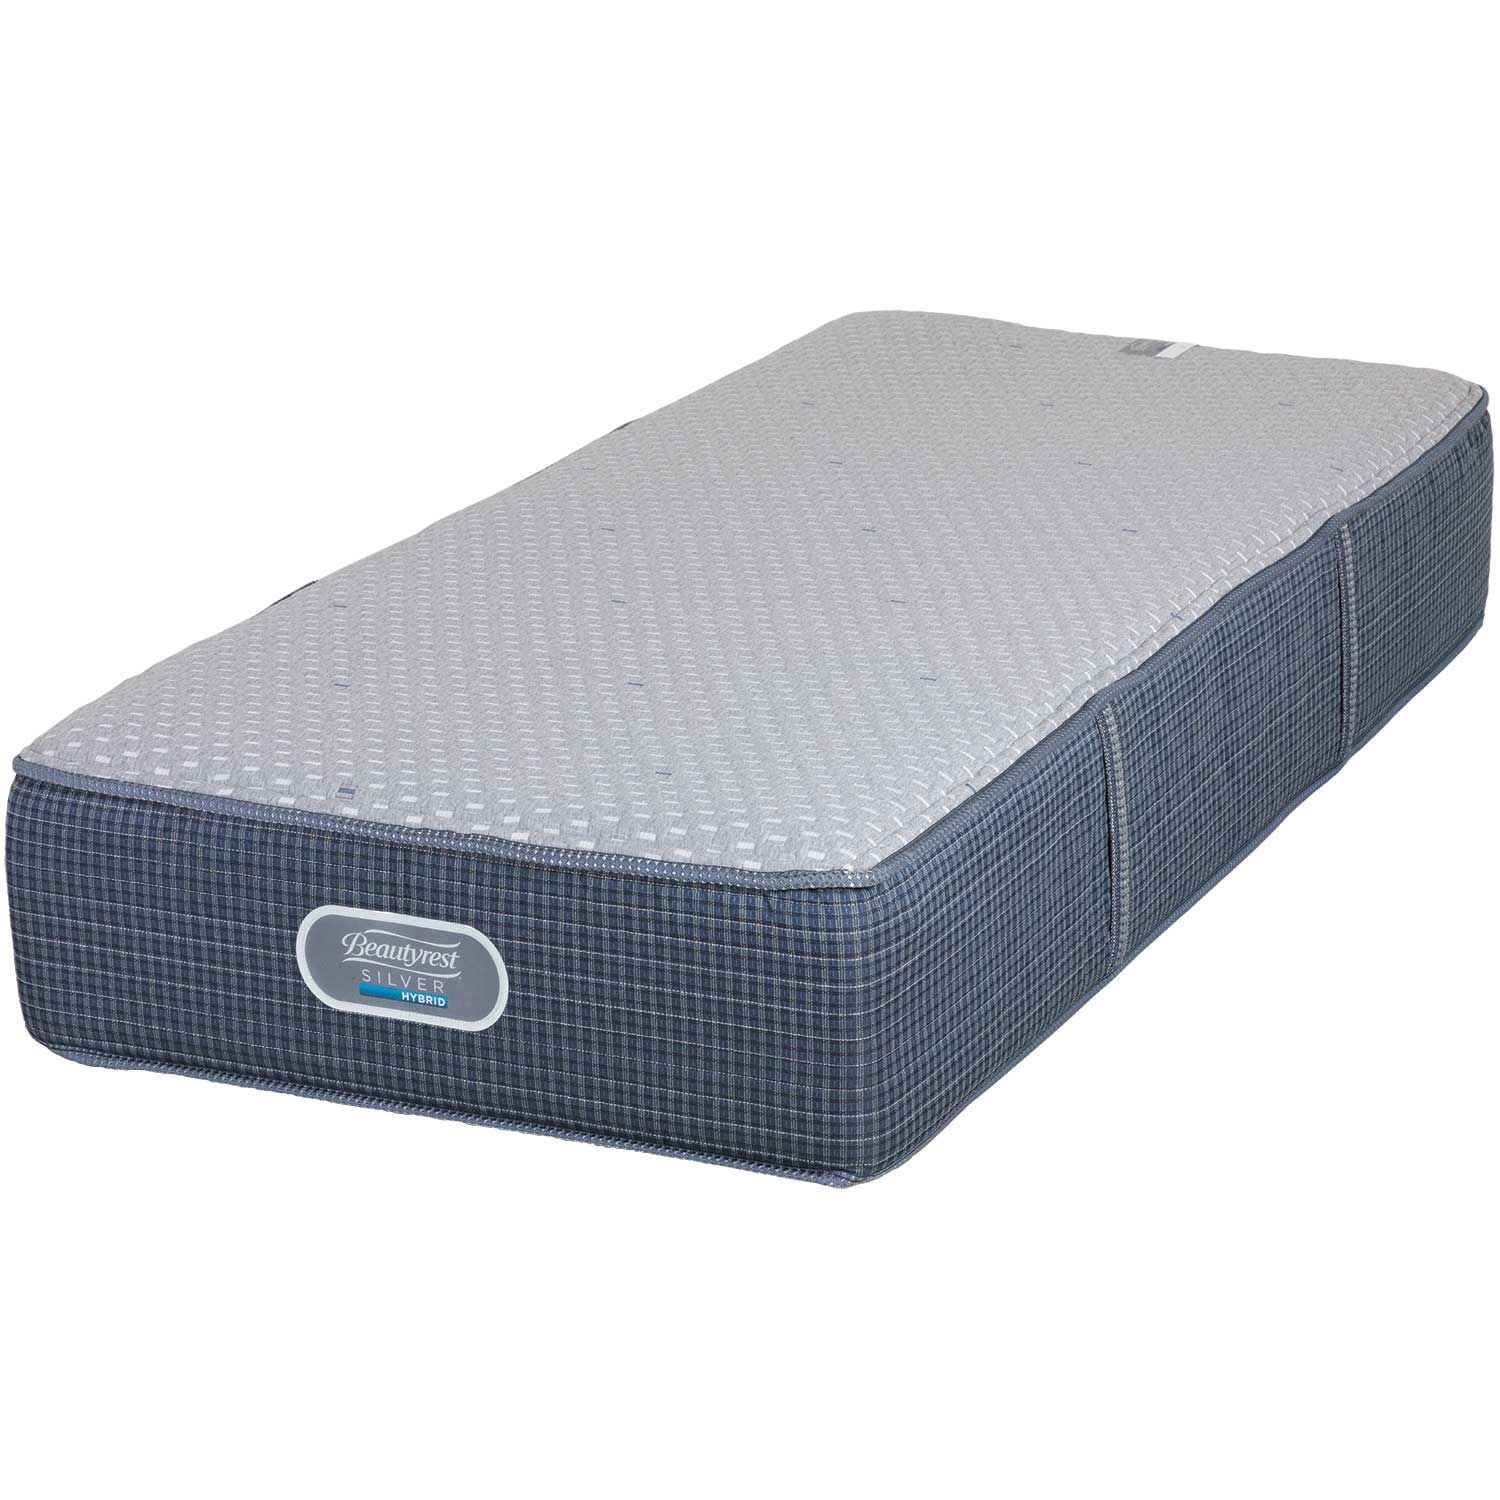 The Best Guide To Twin Xl Mattress